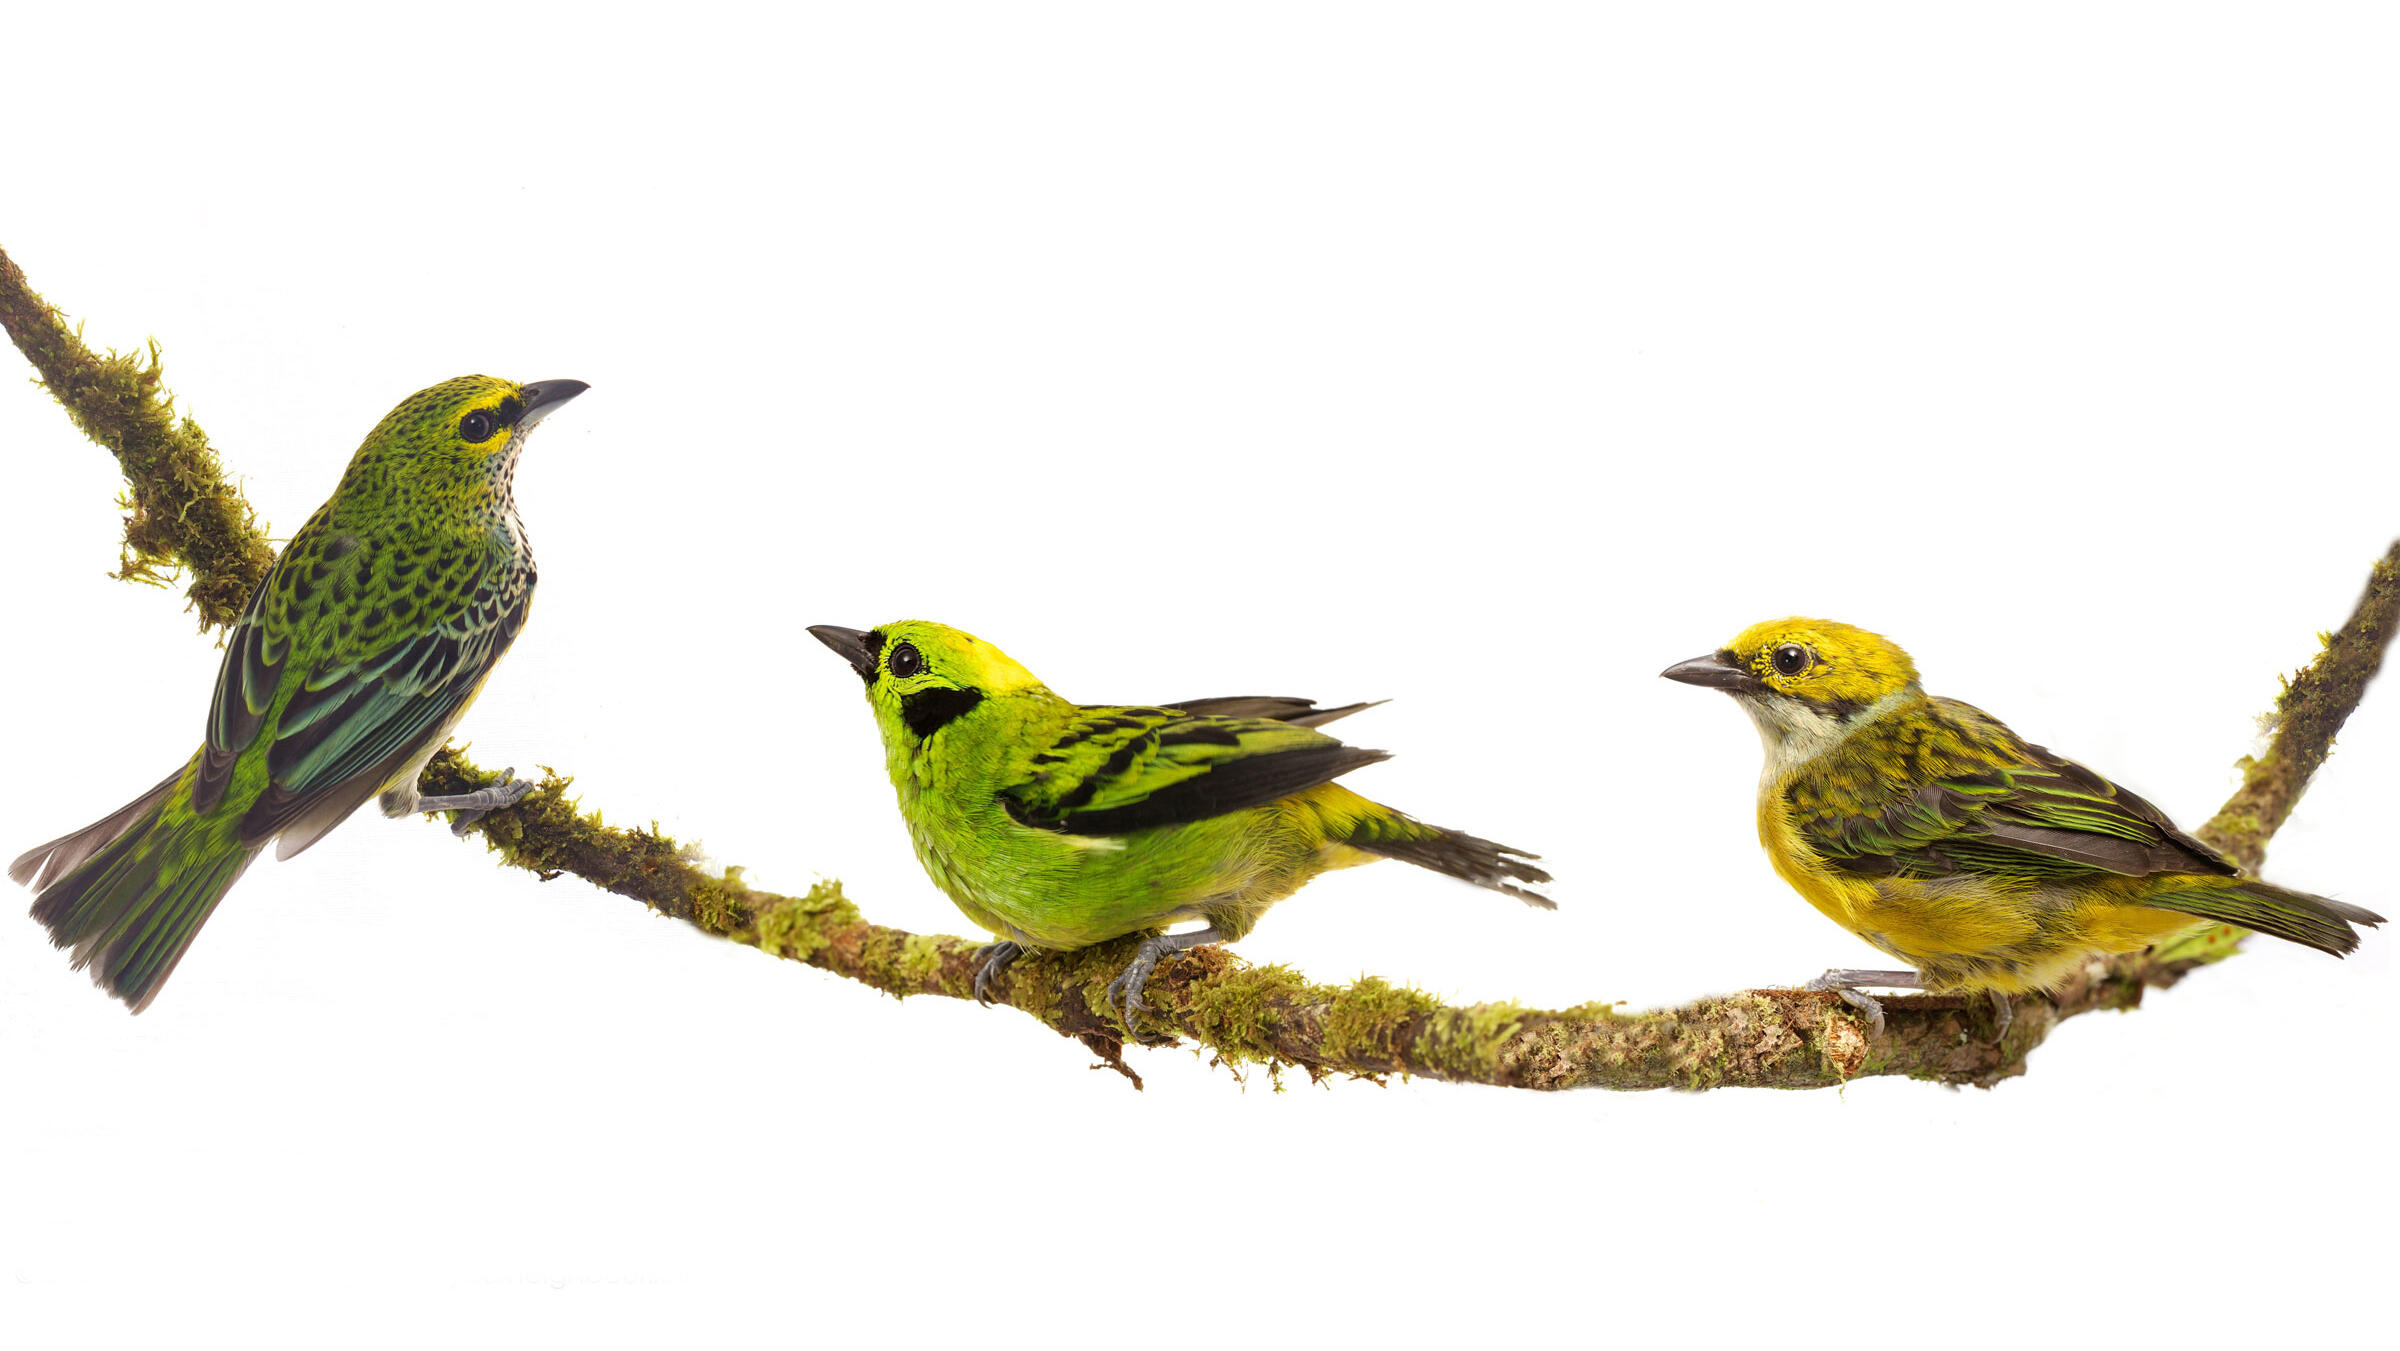 Speckled Tanager, Emerald Tanager, and Silver-throated Tanager. Sean Graesser